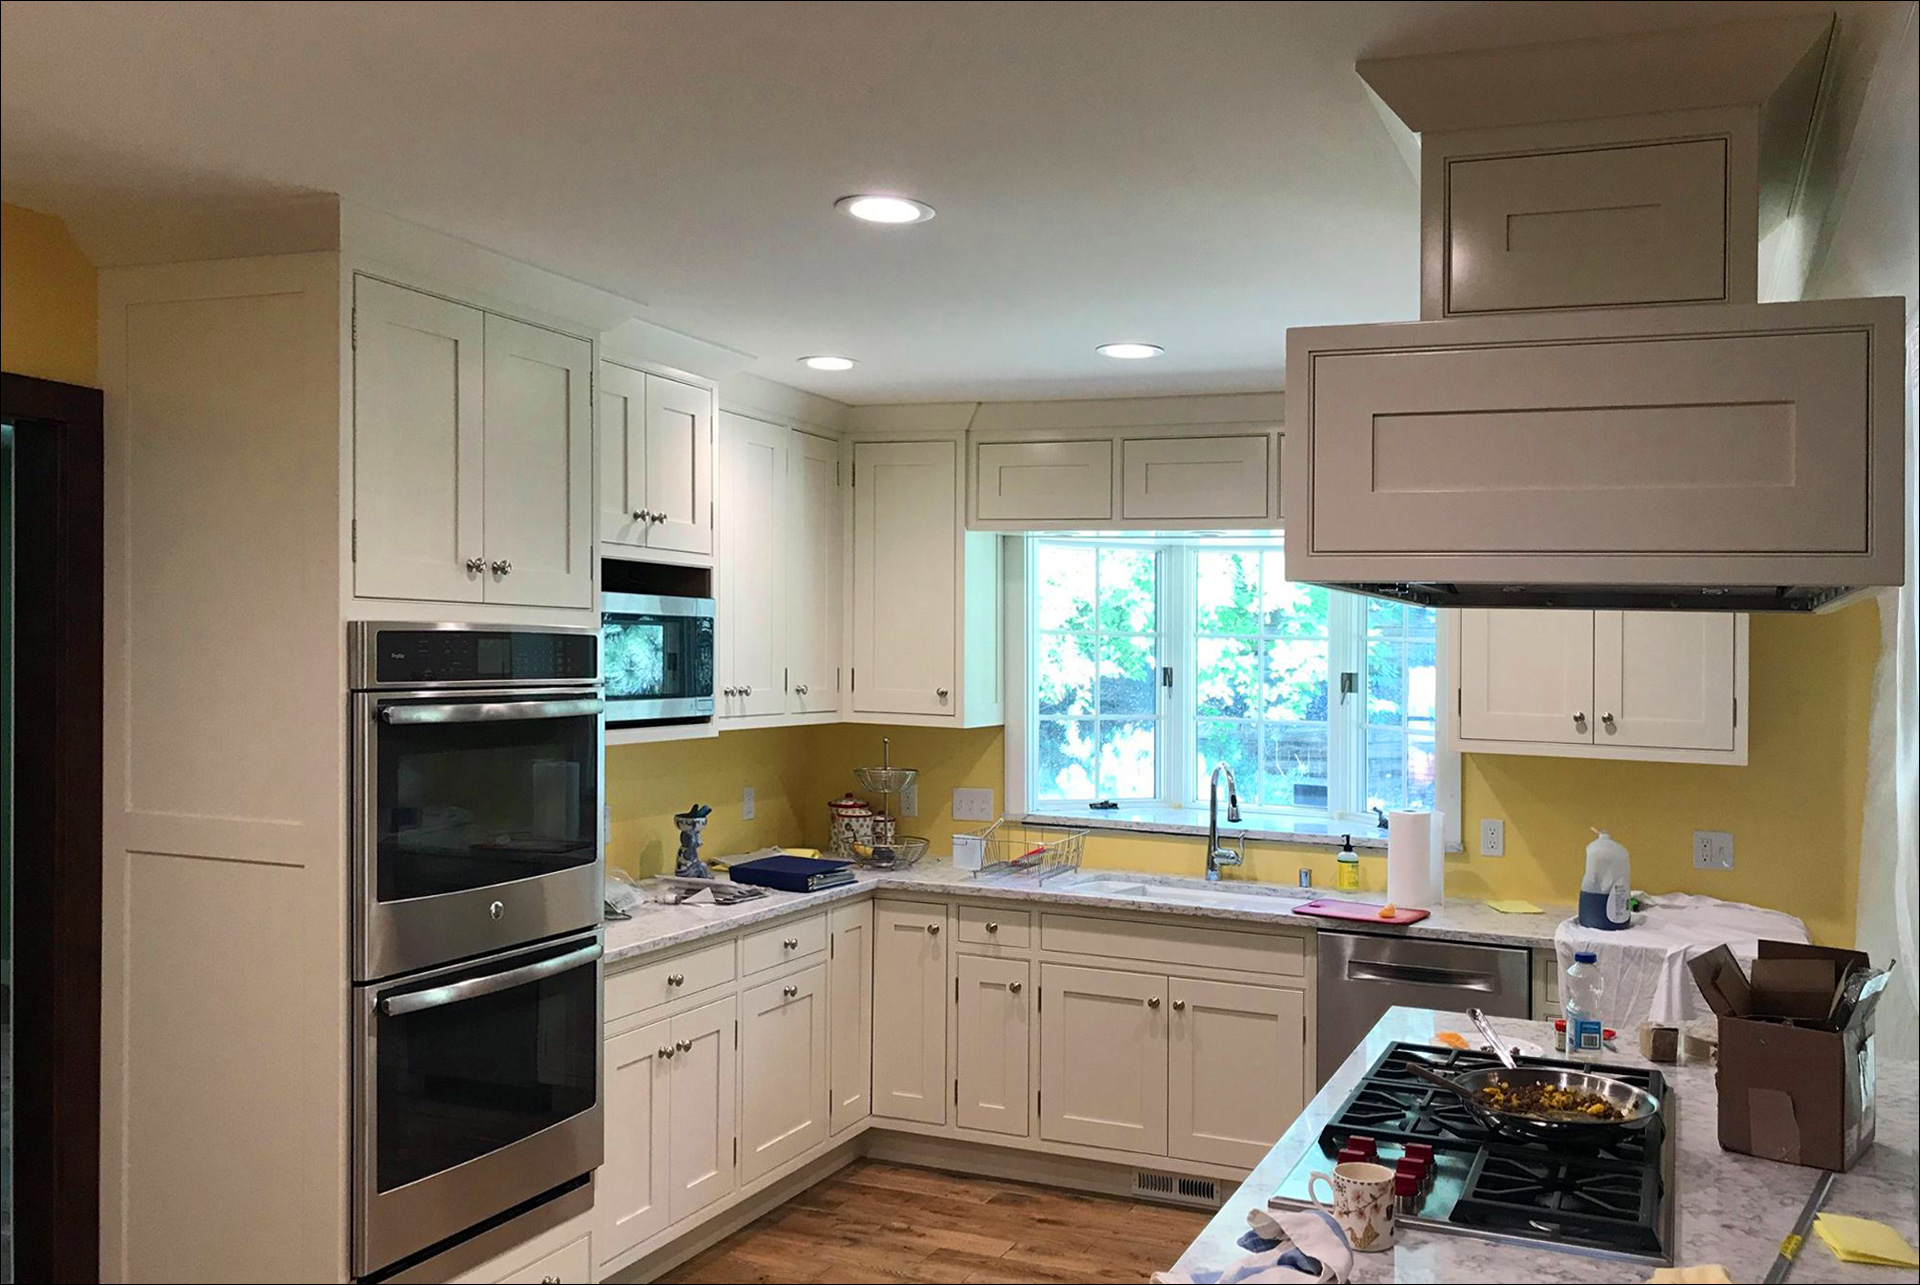 Kitchen Remodel White Cabinets White Marble Countertops outset Windows New Kitchen Appliances 5 Johnson Construction